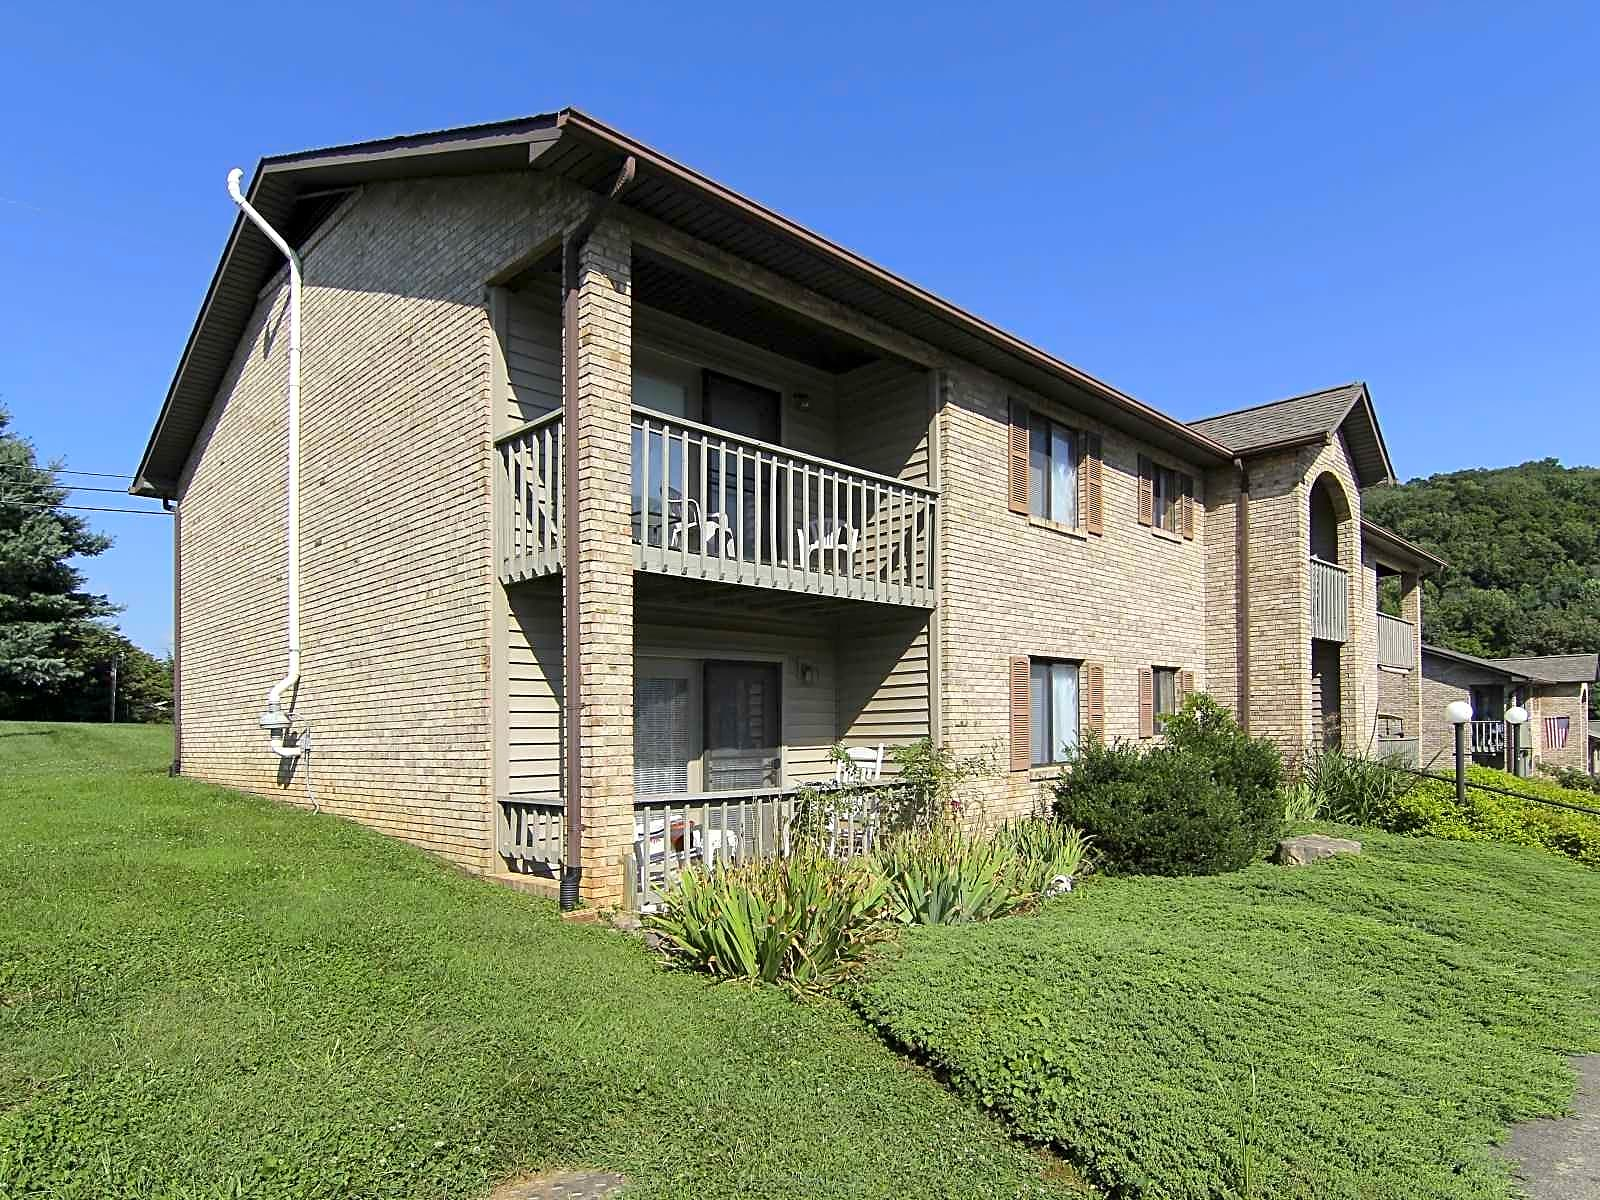 Photo: Kingsport Apartment for Rent - $485.00 / month; 1 Bd & 1 Ba